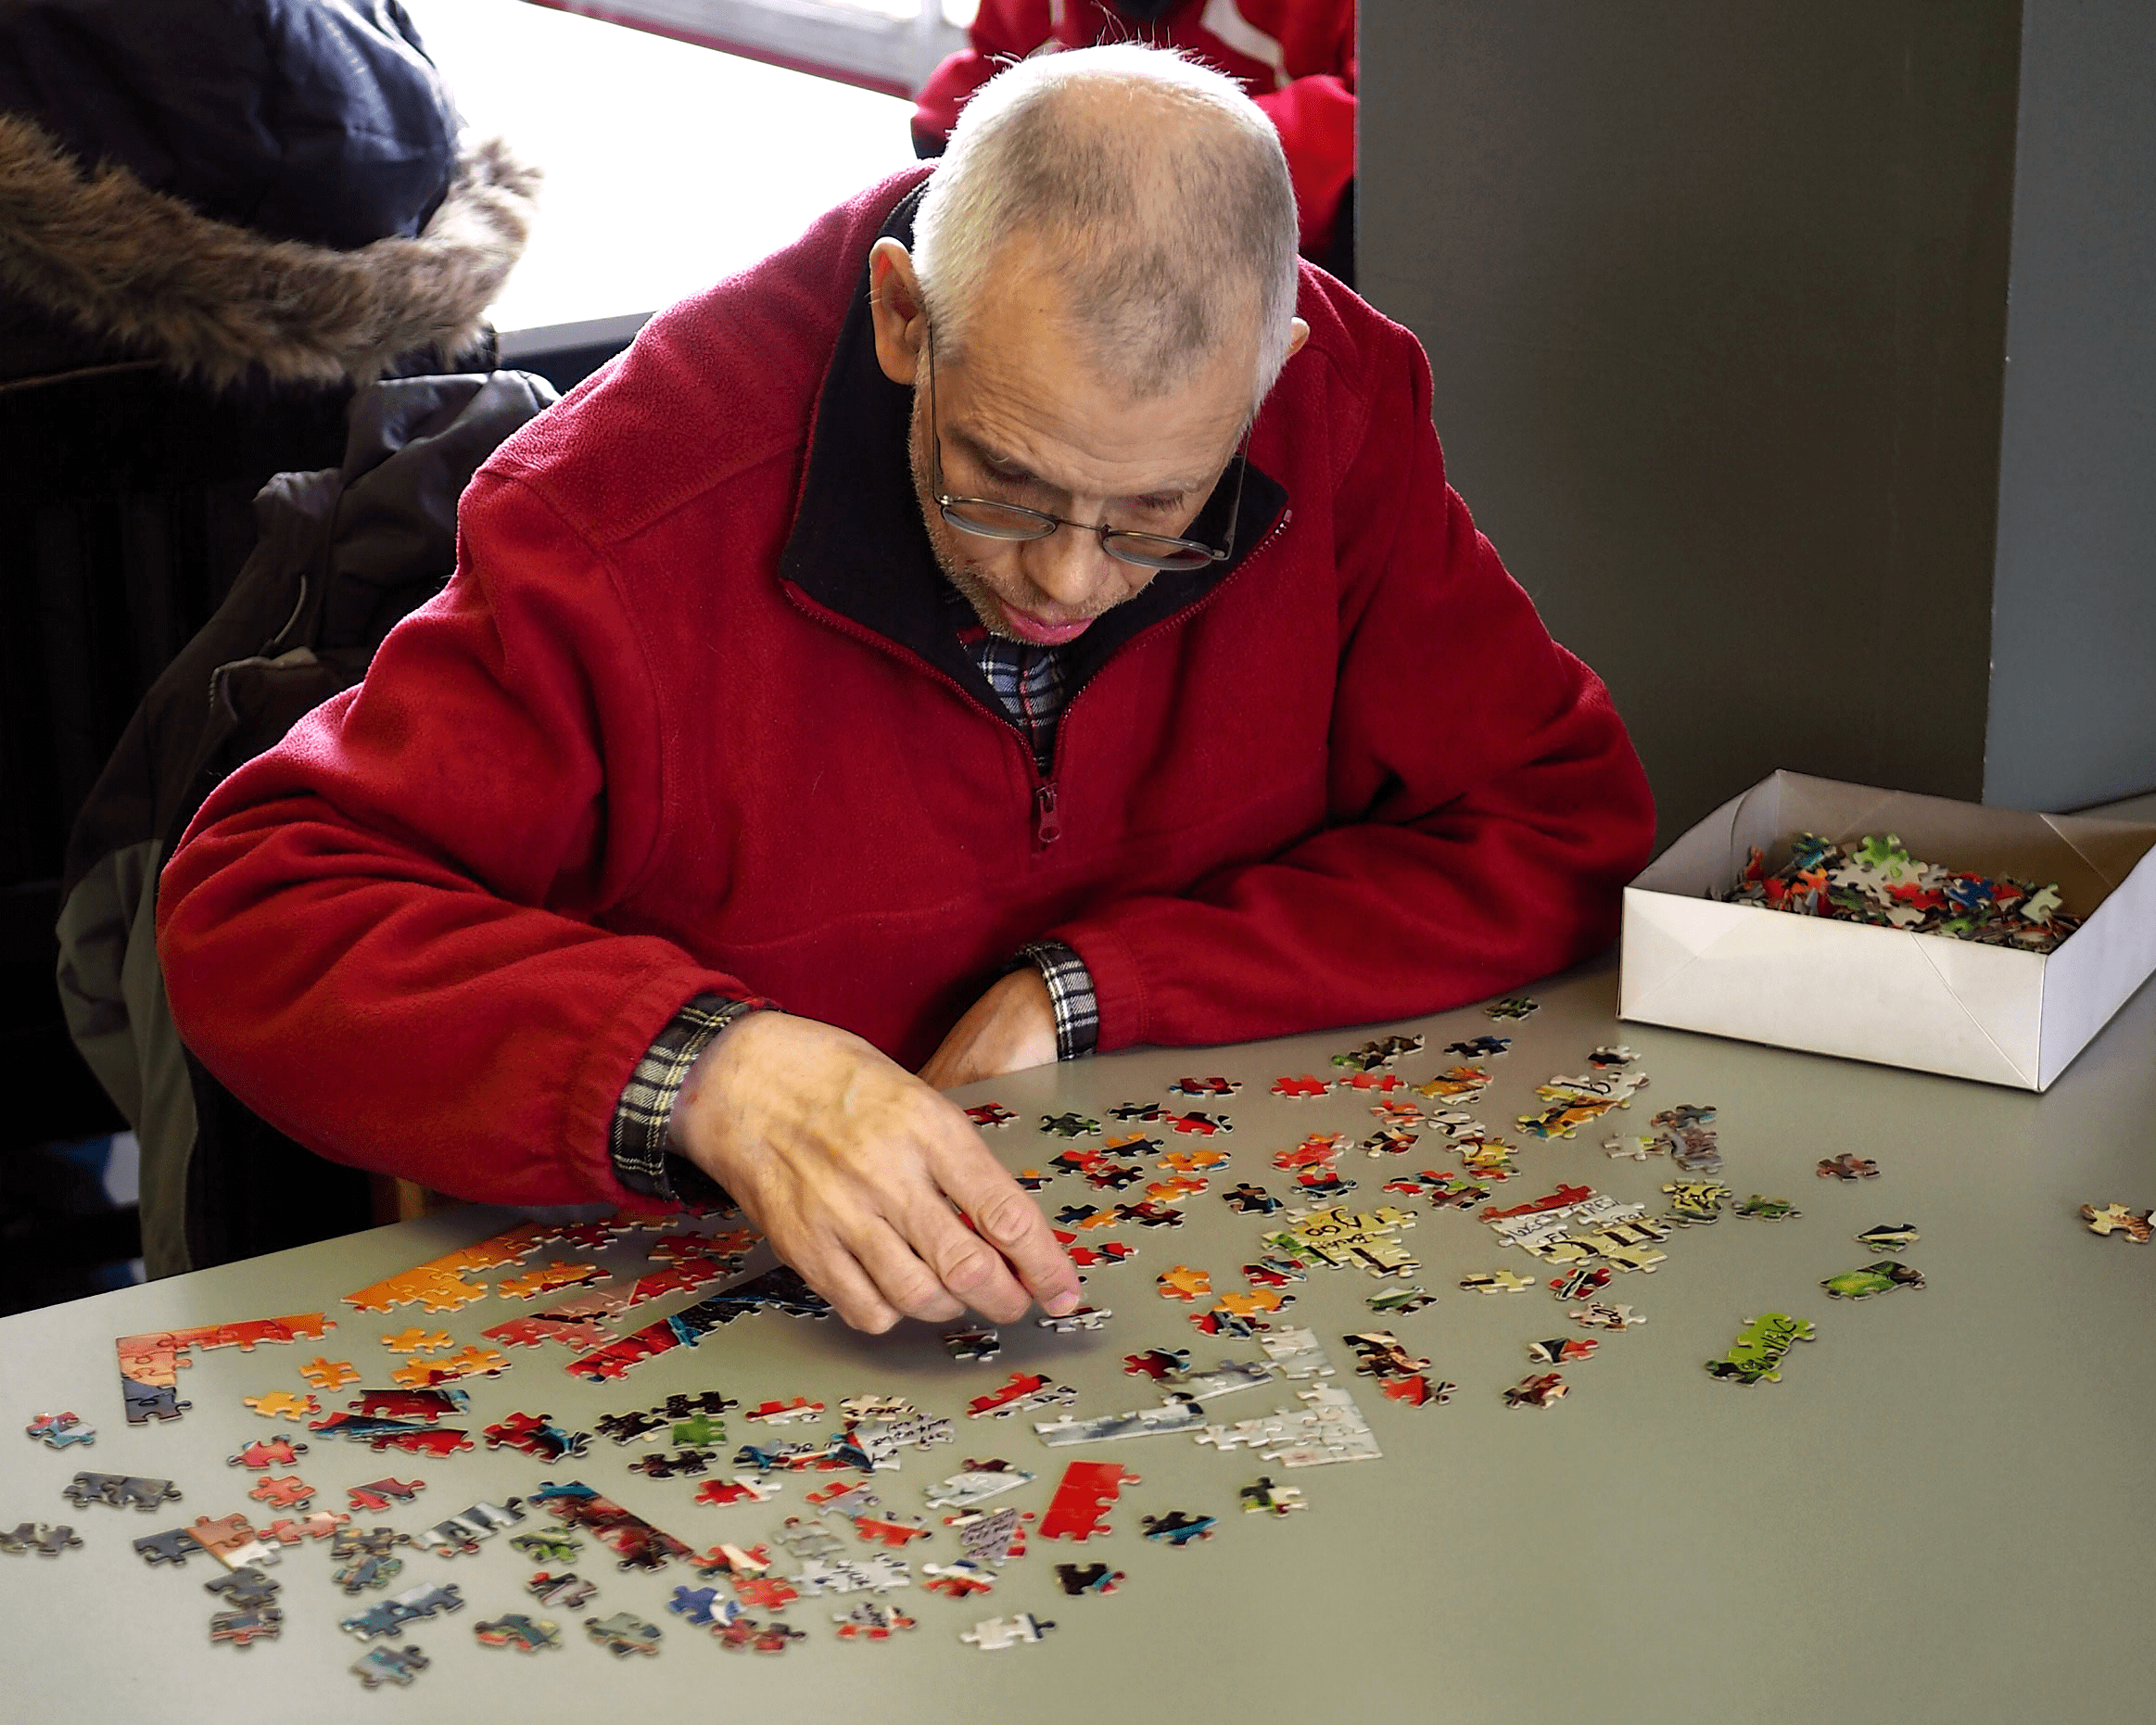 An older man is working on a puzzle.